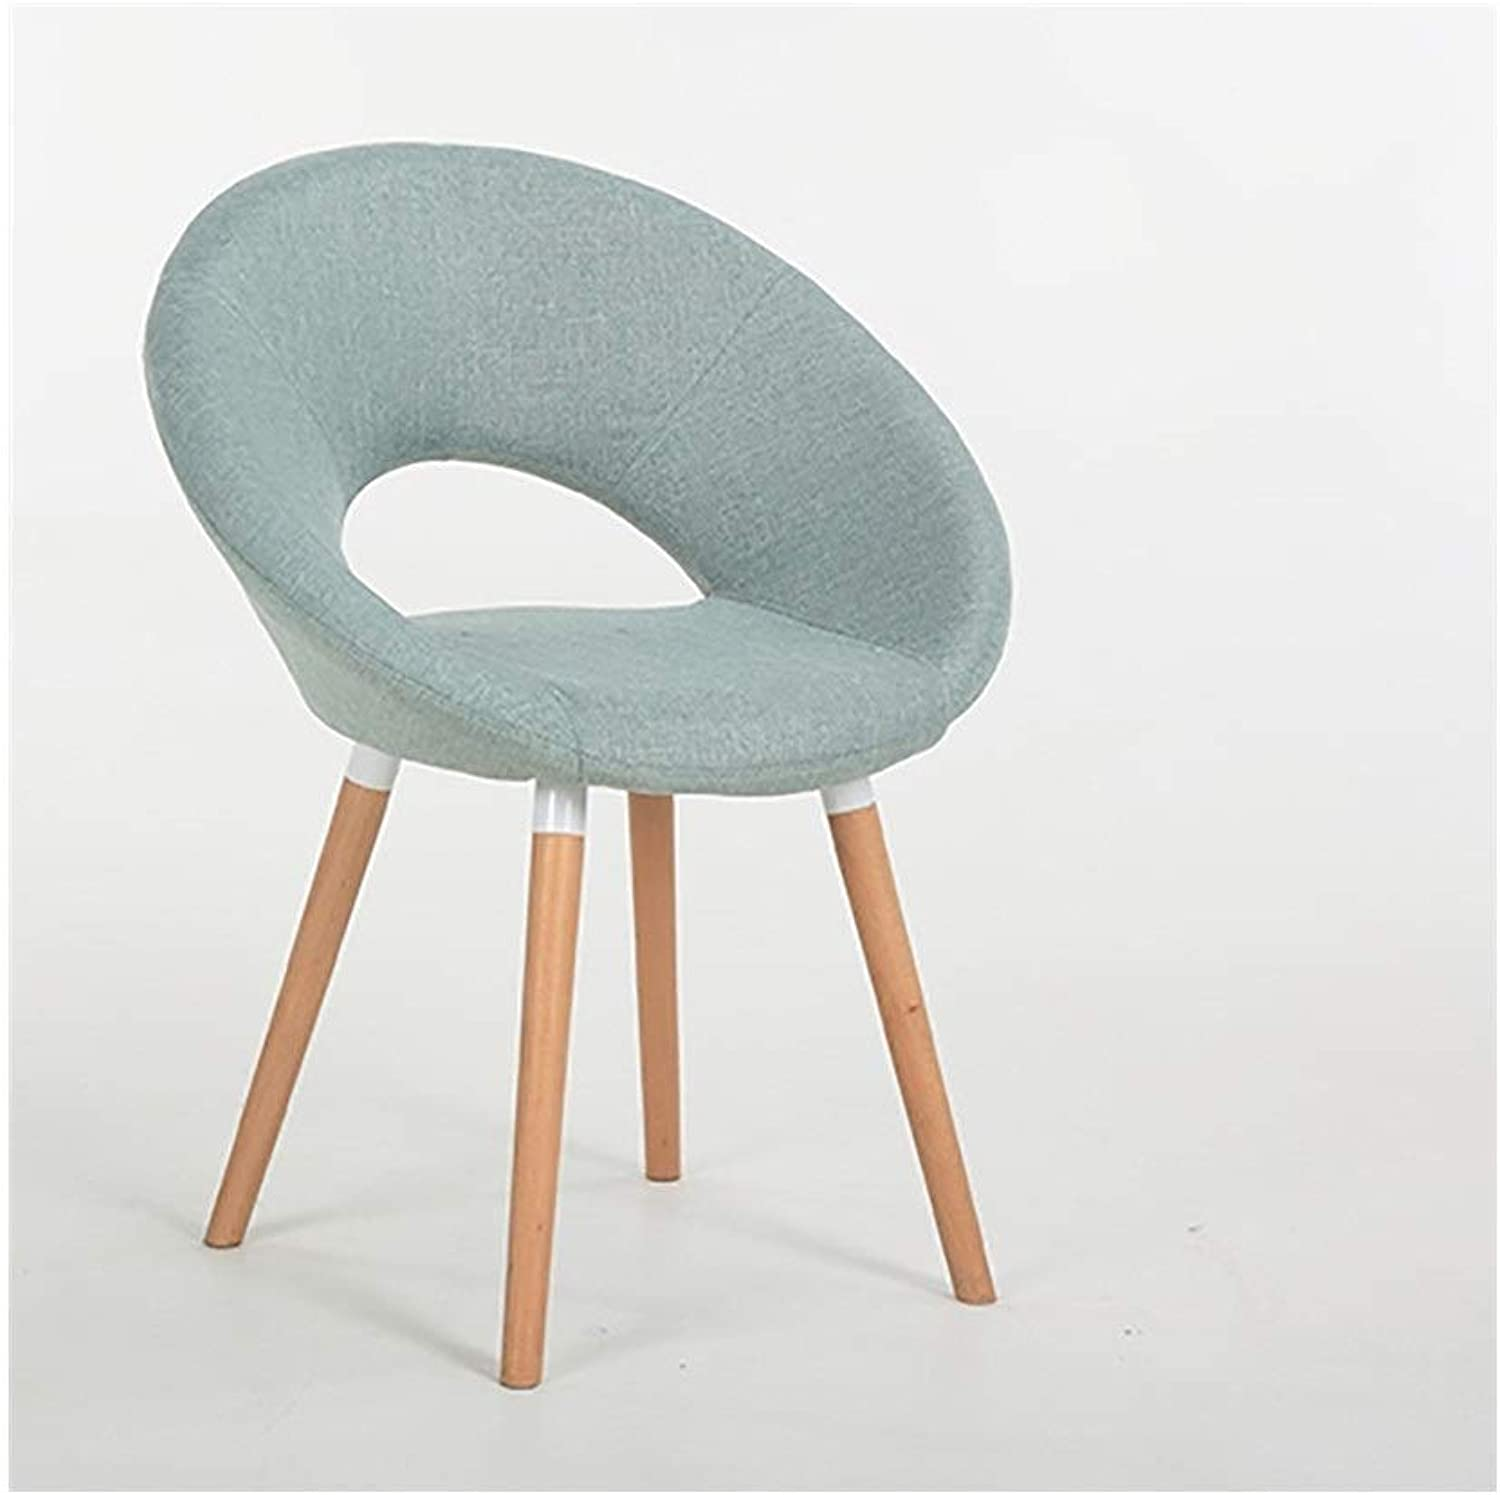 KXBYMX Solid Wood Dining Chair Desk Chair Simple Leisure Chair Designer Chair Hotel Coffee Chair Computer Chair - home stool (color   K)